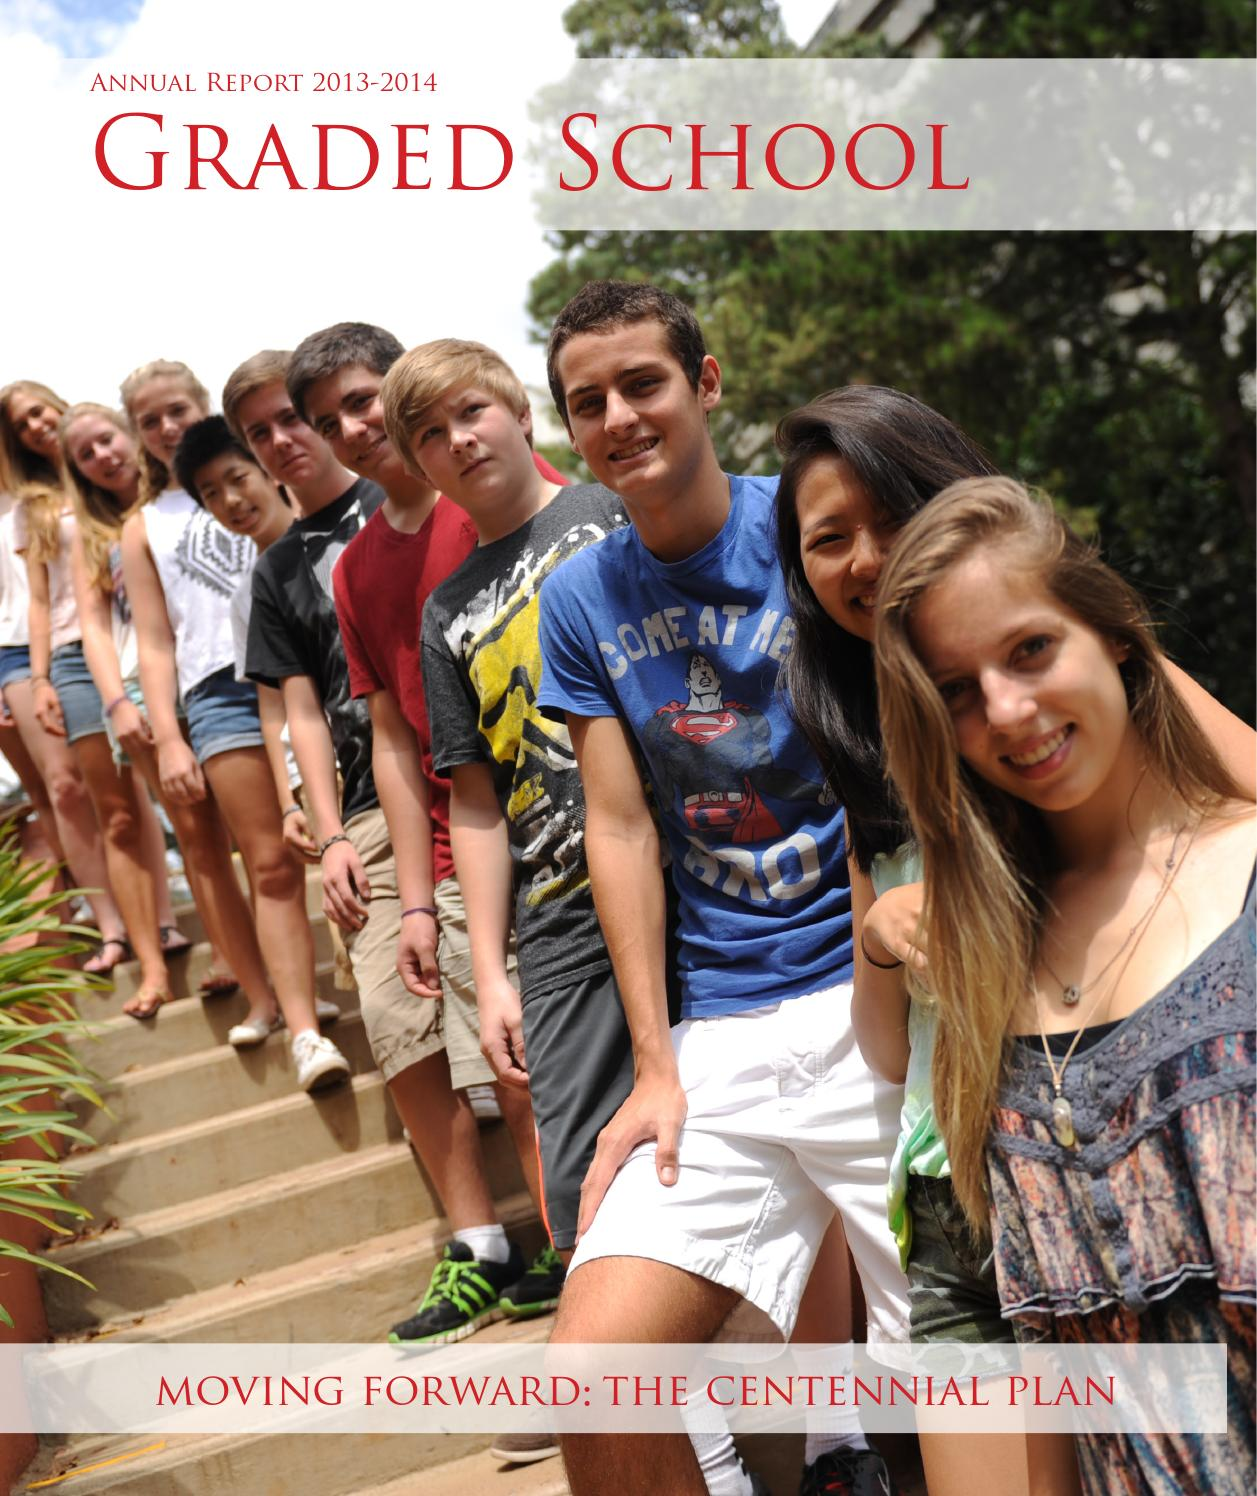 Annual Report 2013-2014 by Graded - issuu